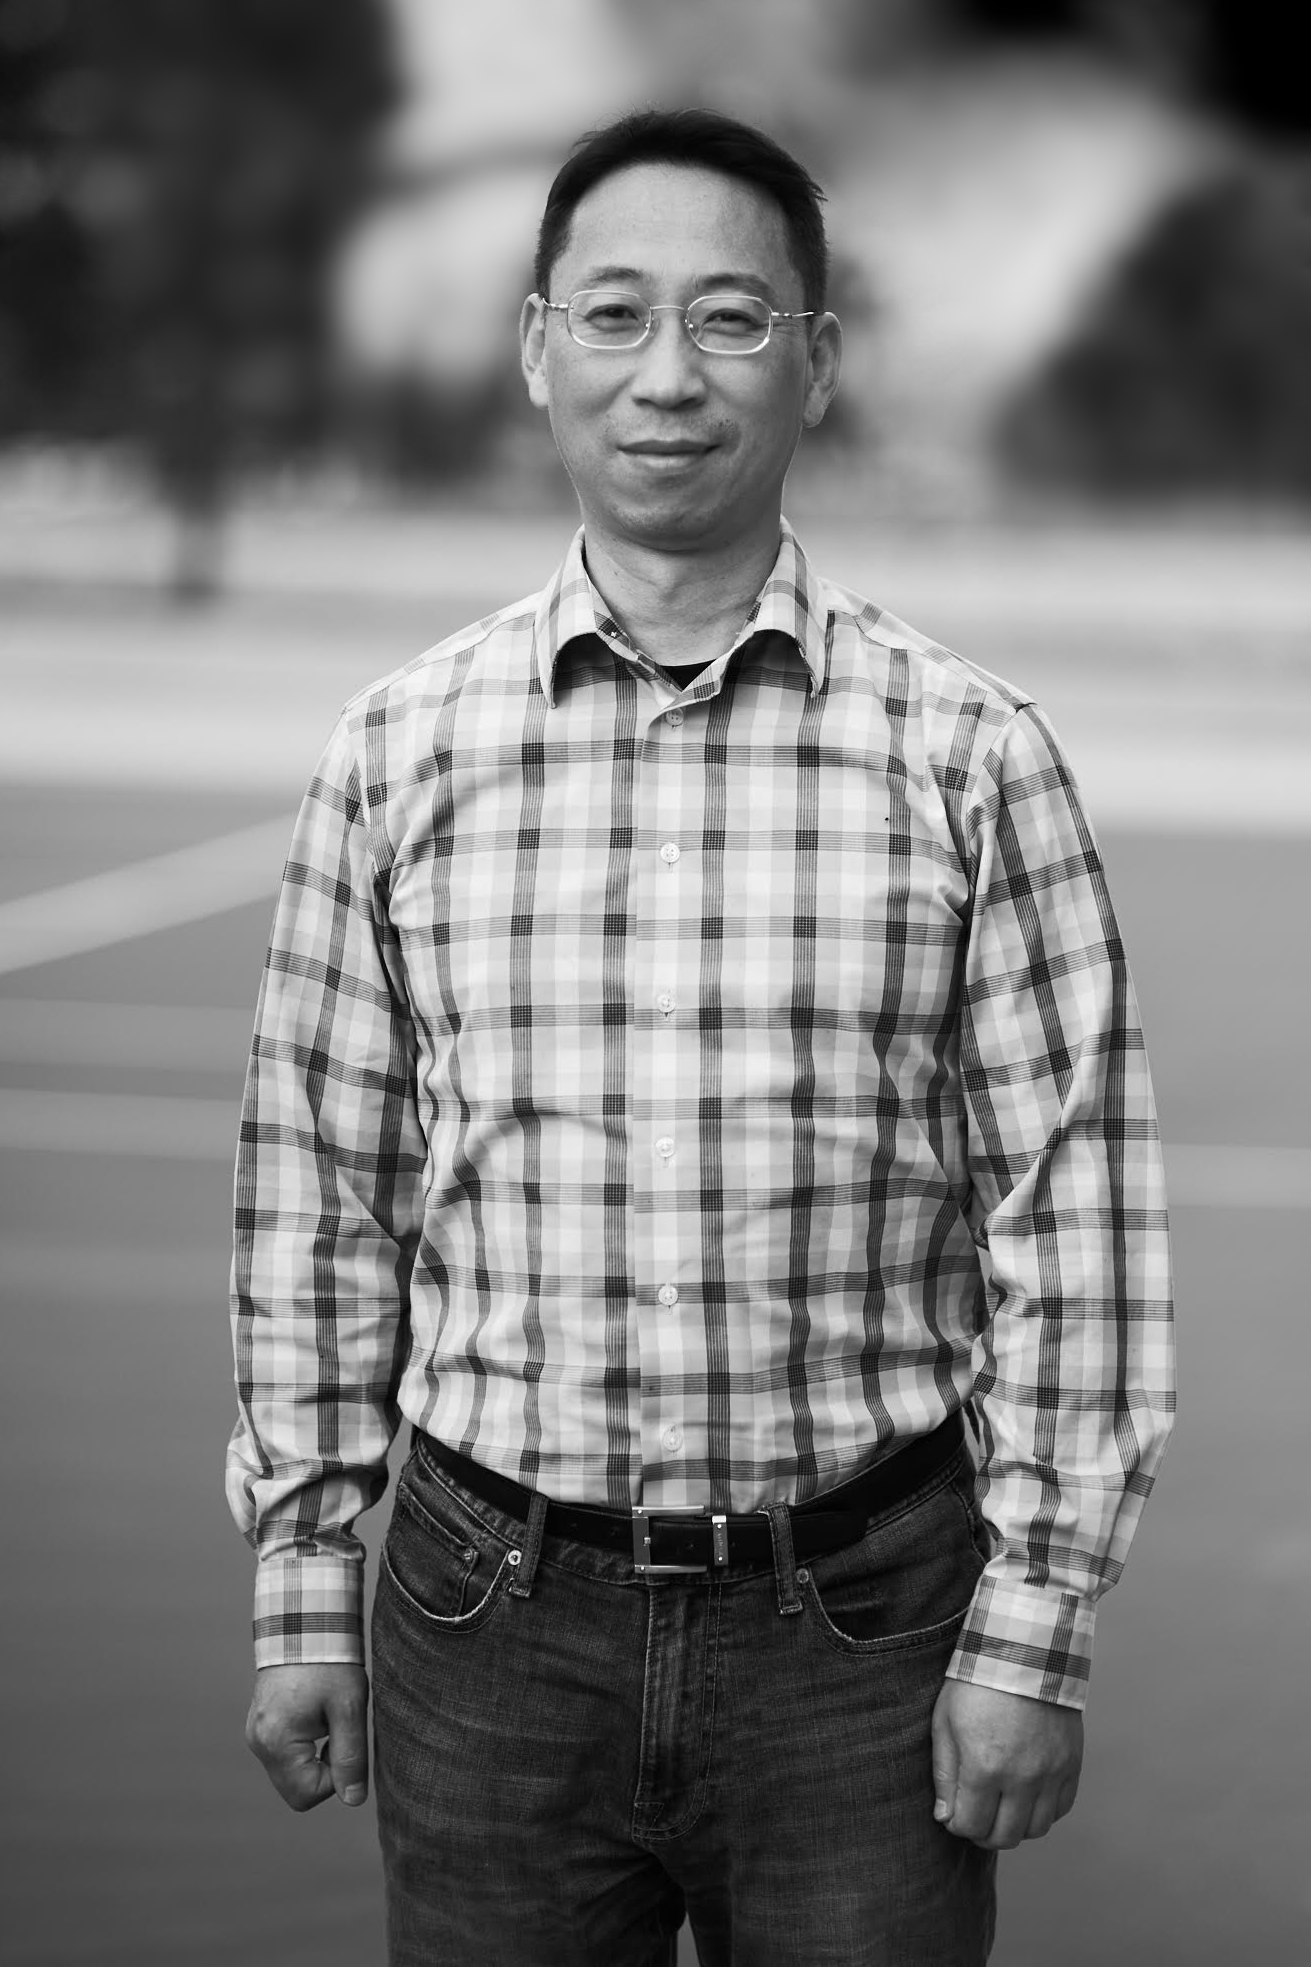 Jeonghoon Sun, PhD - Director of Antibody Discovery and Protein Engineering